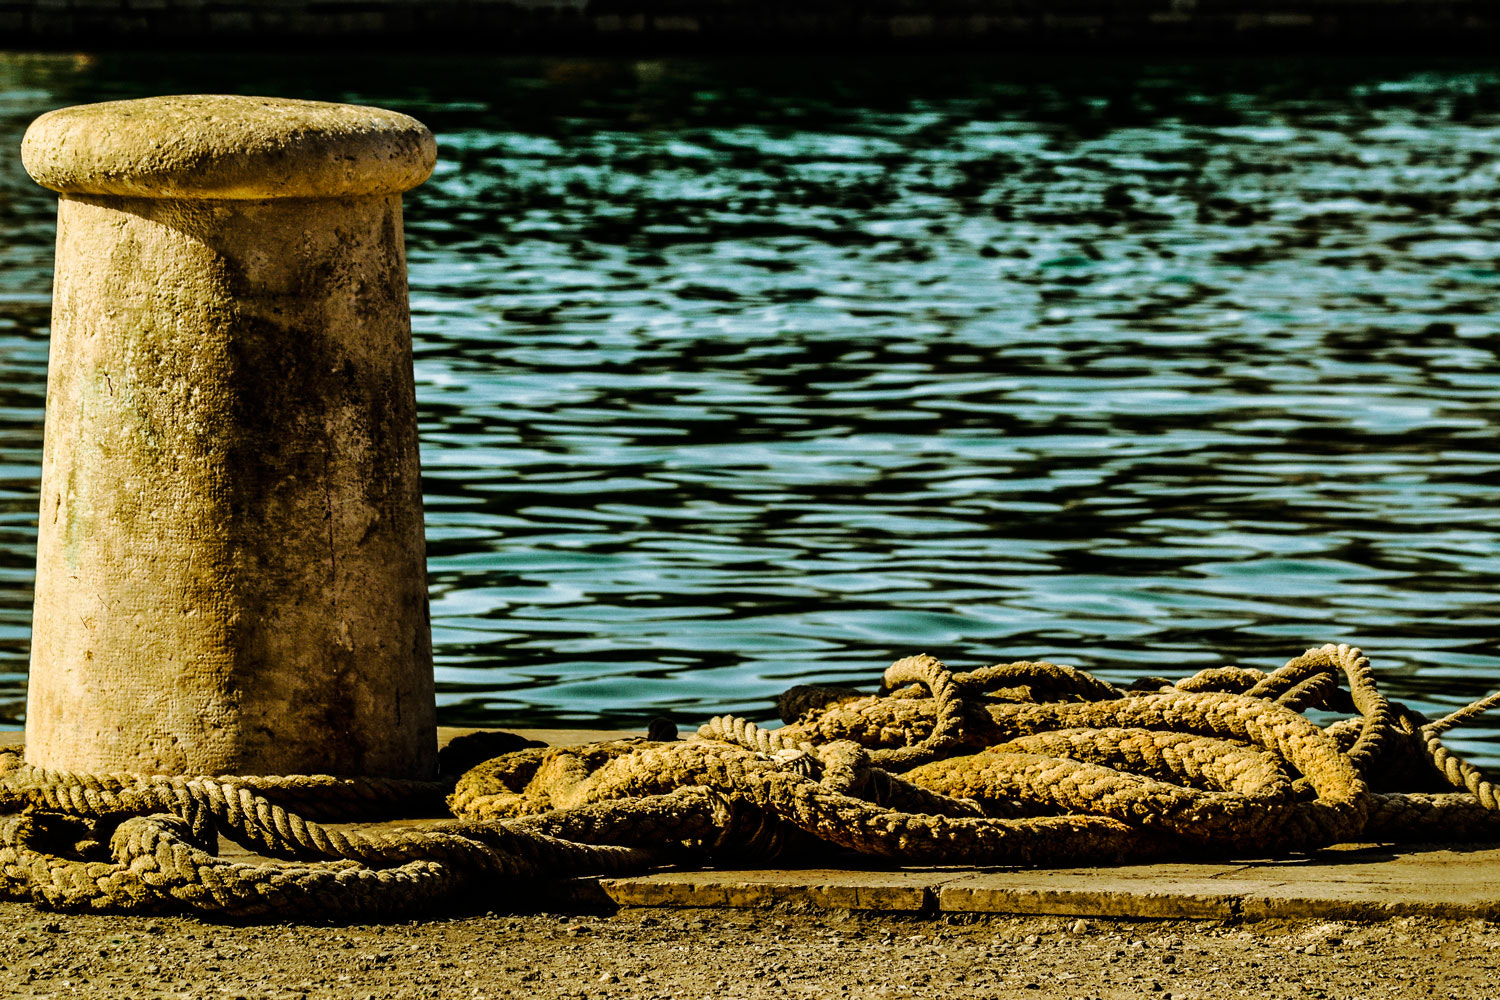 Photograph Harbor by LH Padovan on 500px